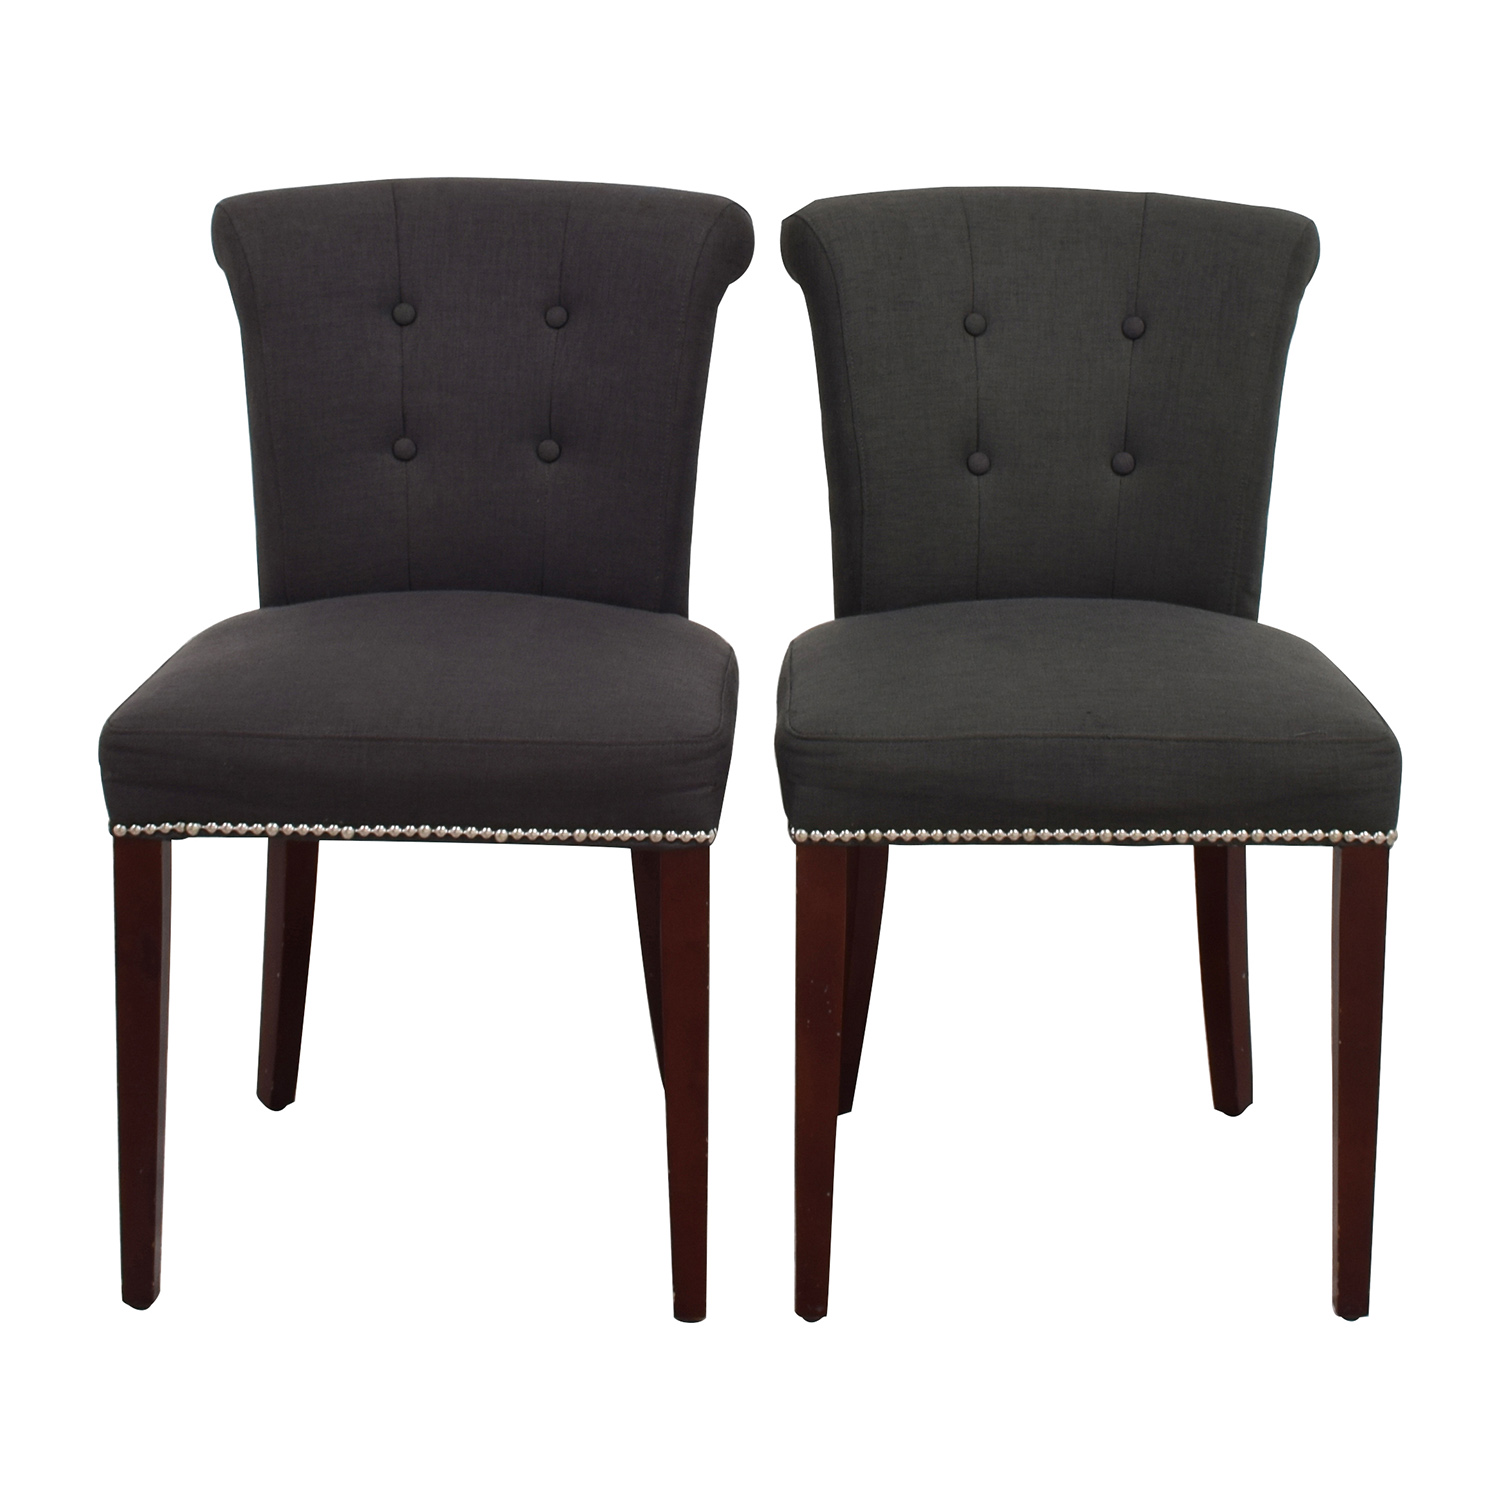 shop Safavieh En Vogue Sinclair Charcoal Nailhead Ring Chairs Safavieh Accent Chairs